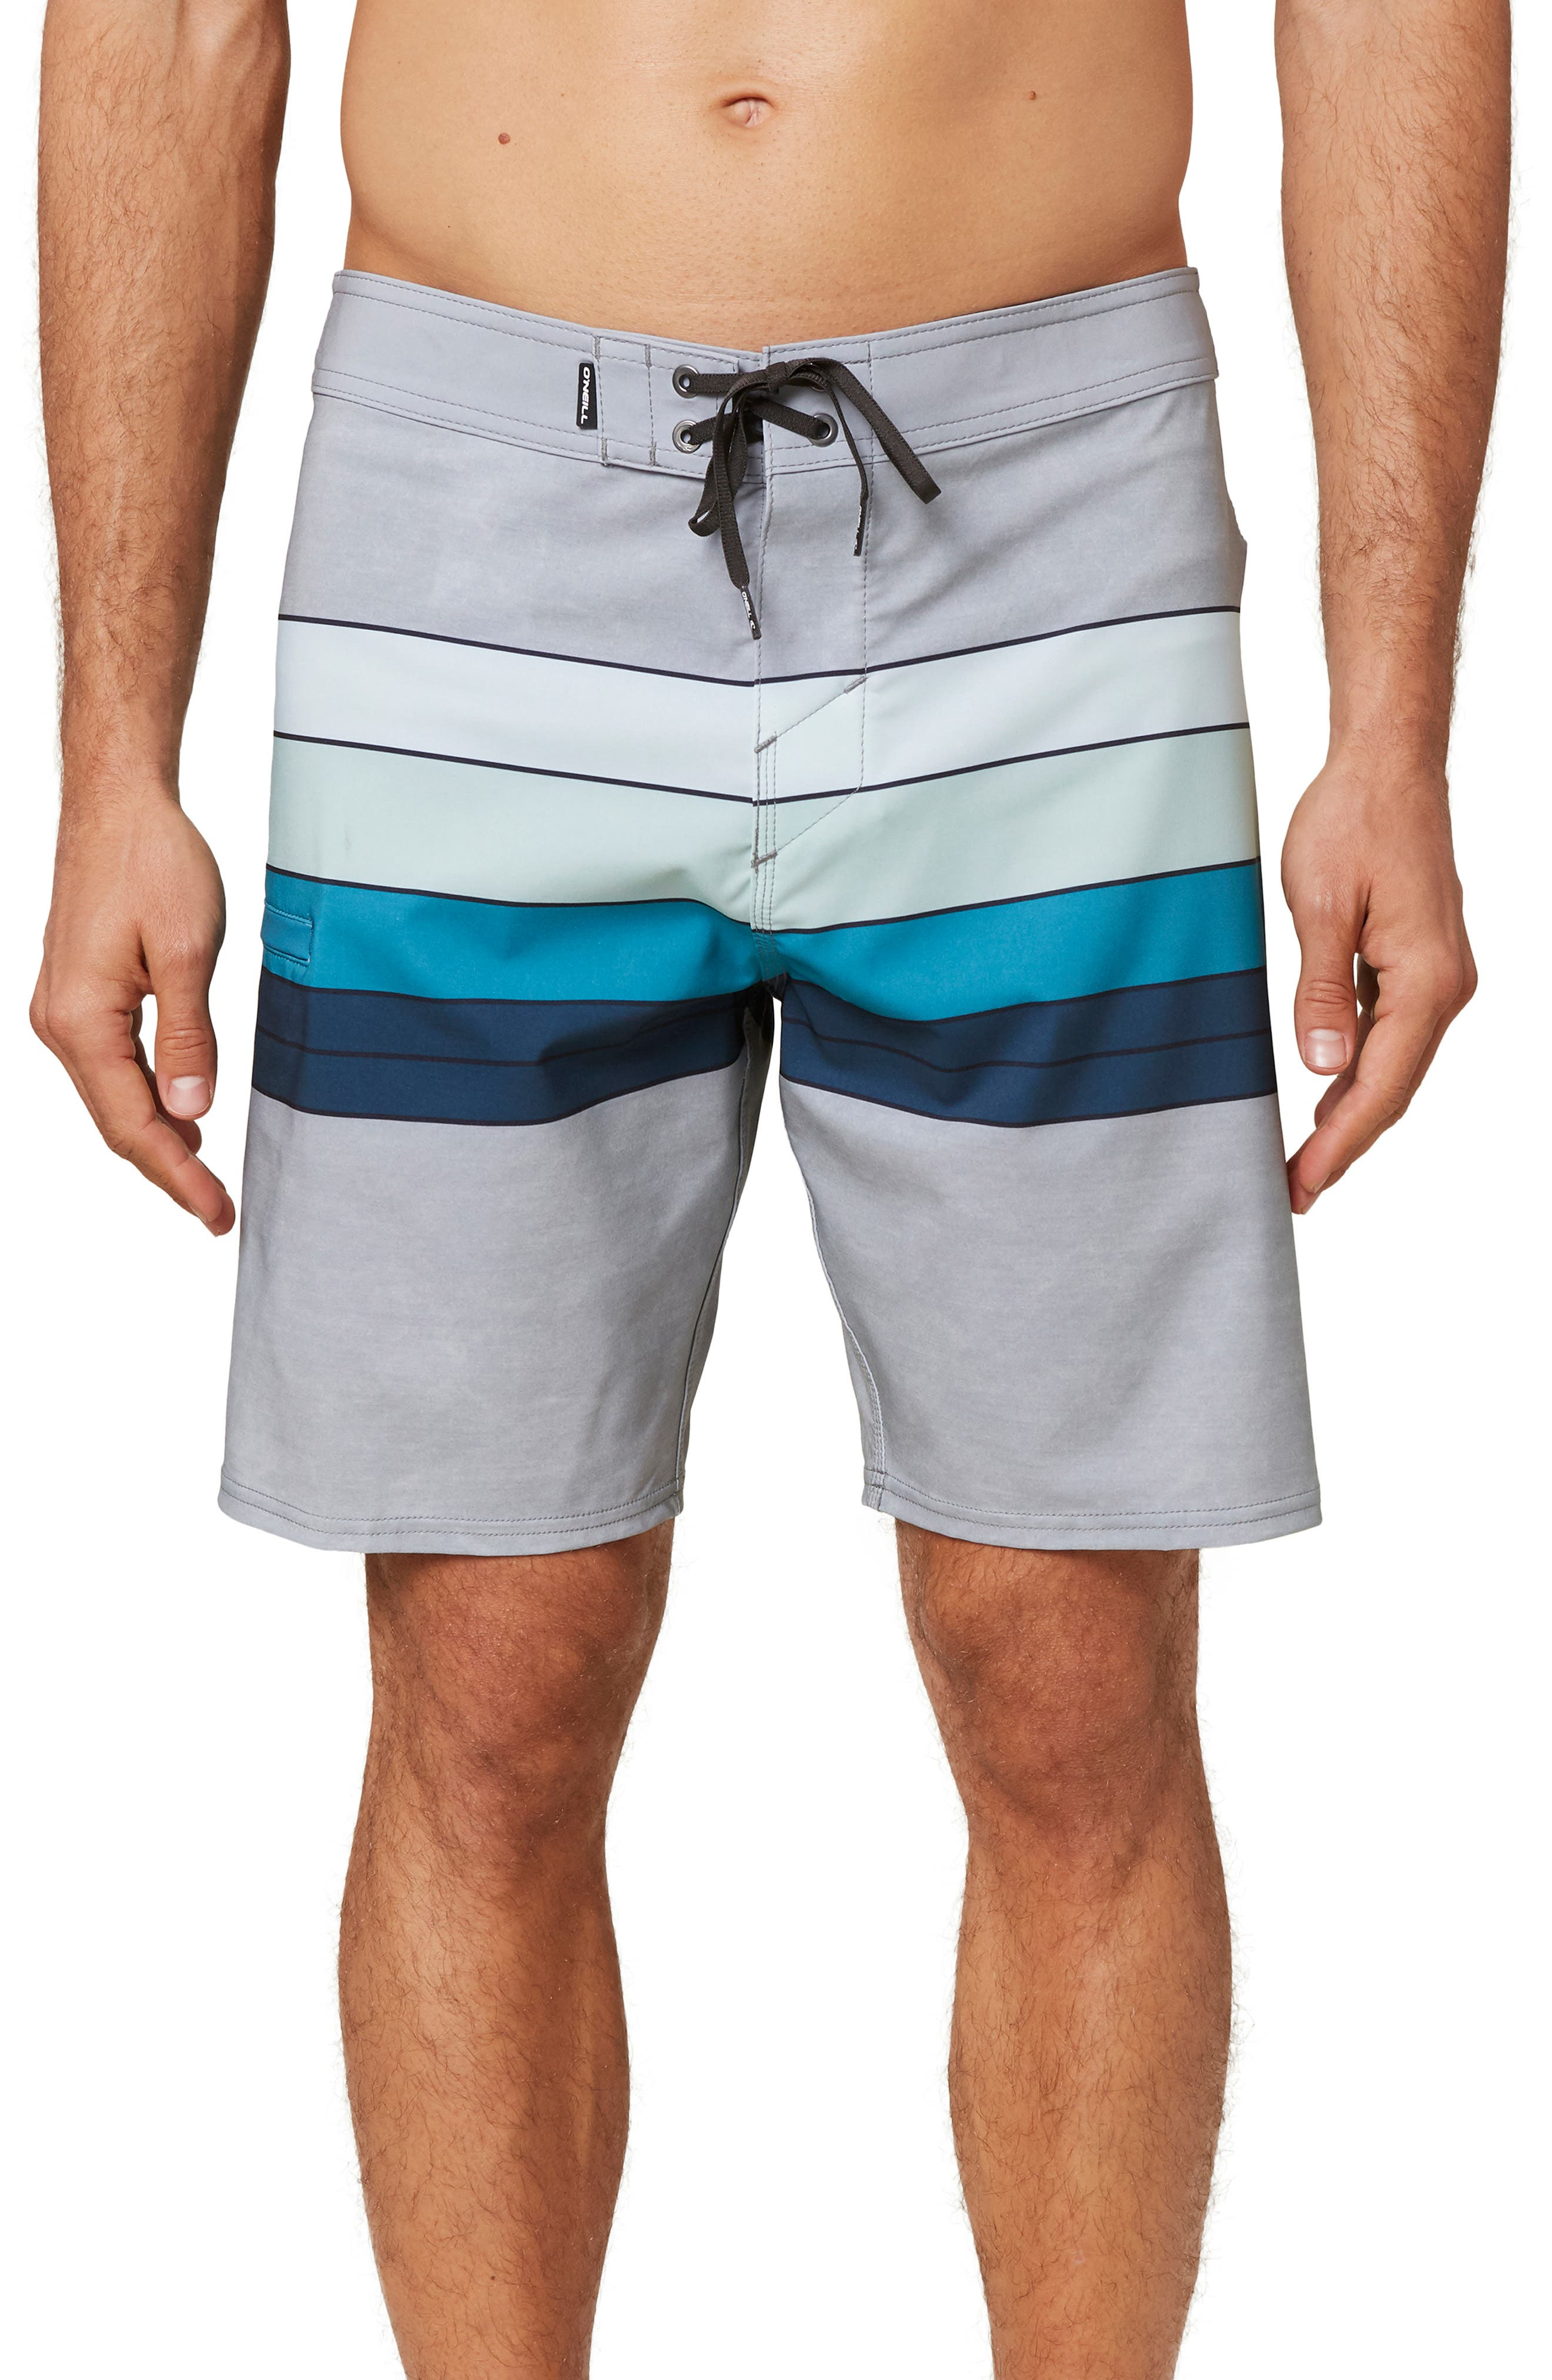 Mens Bags Rainbow Stripes Quick Drying Ultra Light Short Pants Swim Trunks